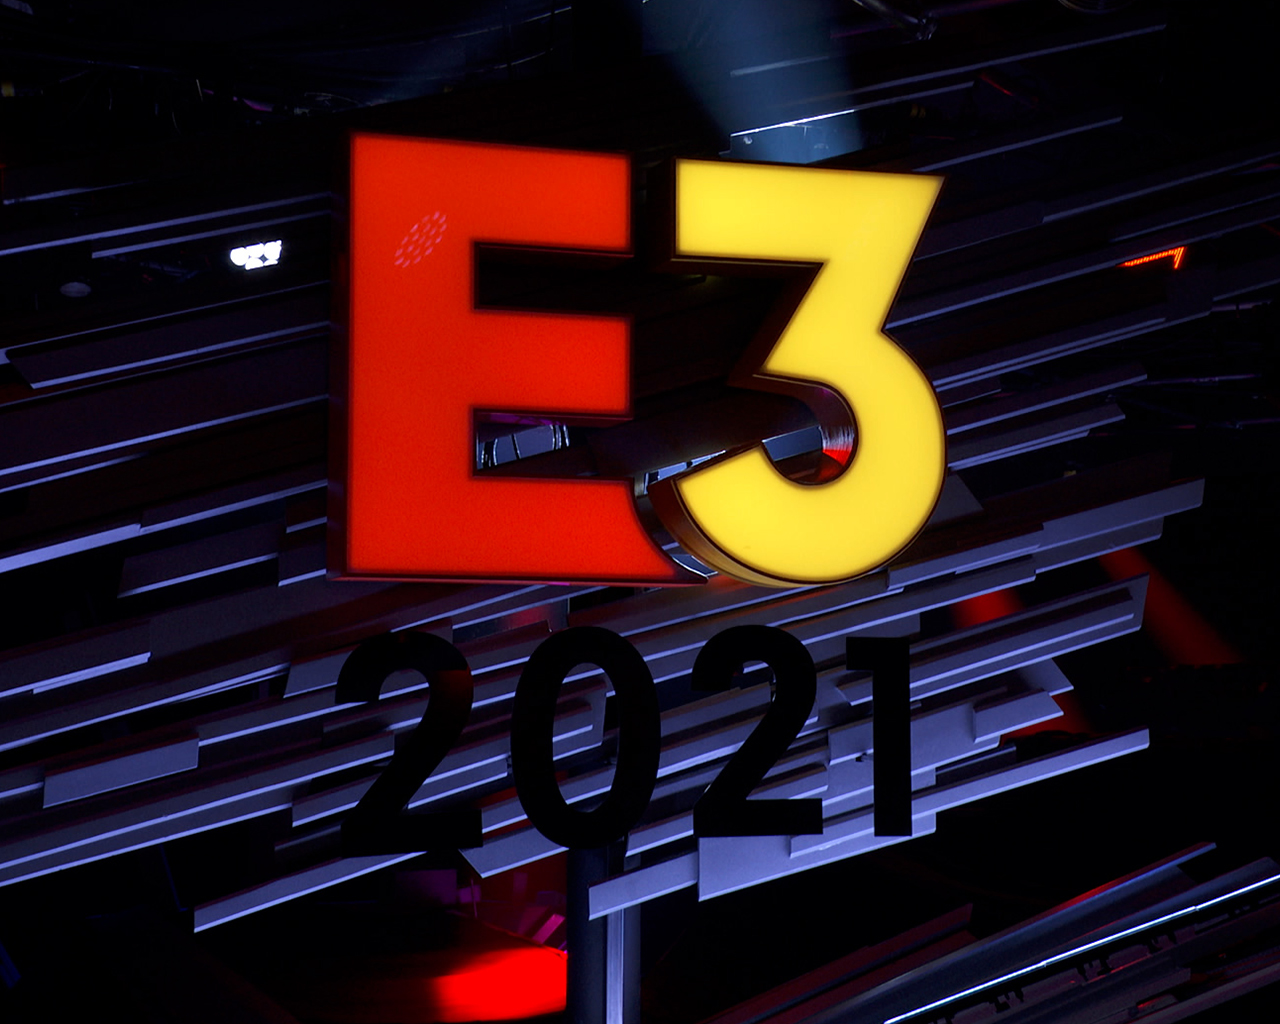 Physical E3 2021 logo from stage set